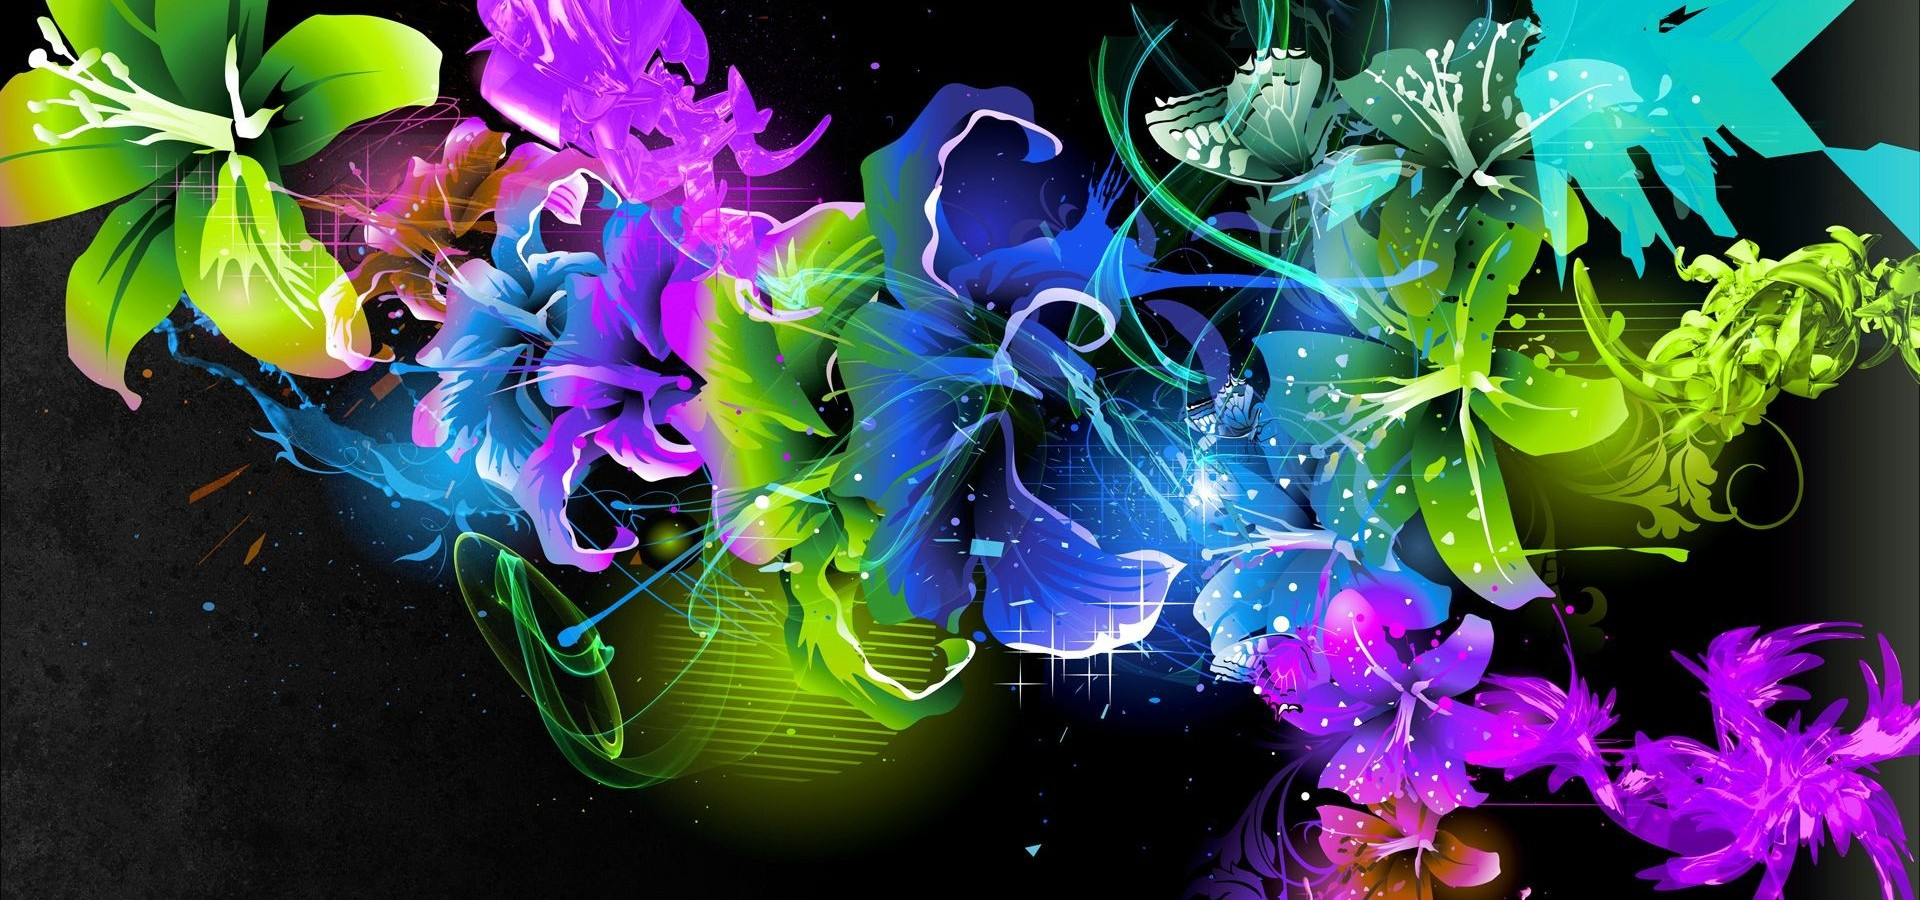 Abstract Free 720p Anime Wallpaper 1080p Wallpaper